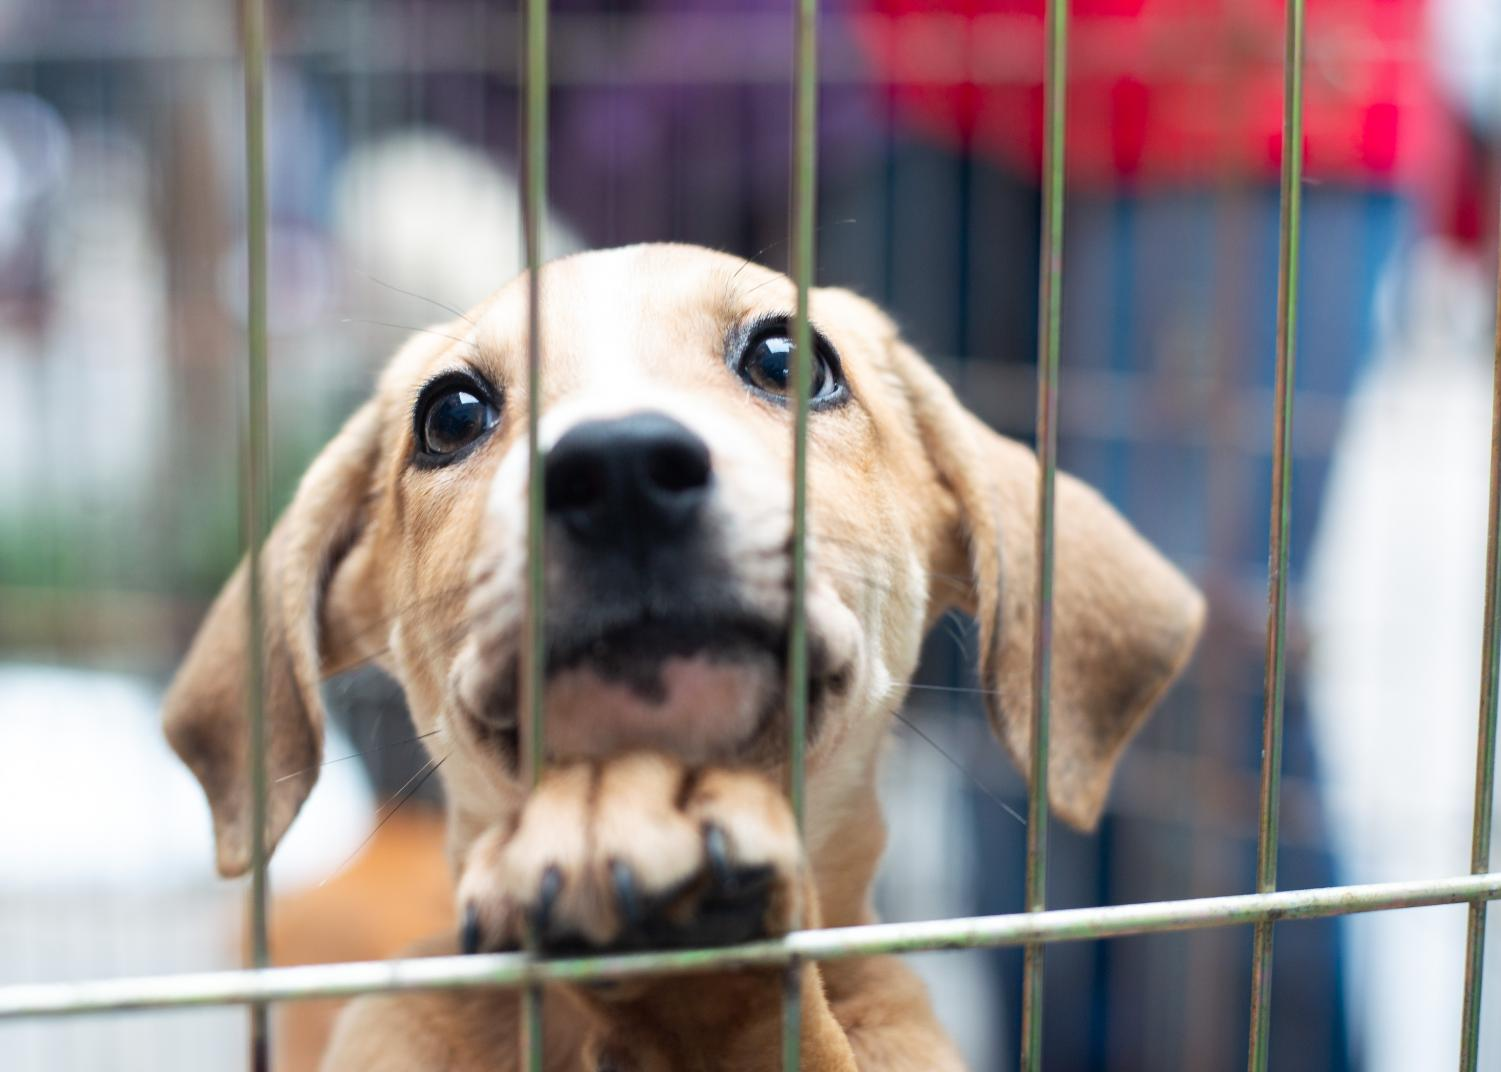 A+nine-week-old+mutt+up+for+adoption+lays+his+paw+on+the+cage.+%22I+think+this+one+is+a+poser%2C%22+a+worker+said.+%22He+is+the+only+one+that+is+staying+for+a+photo.%22